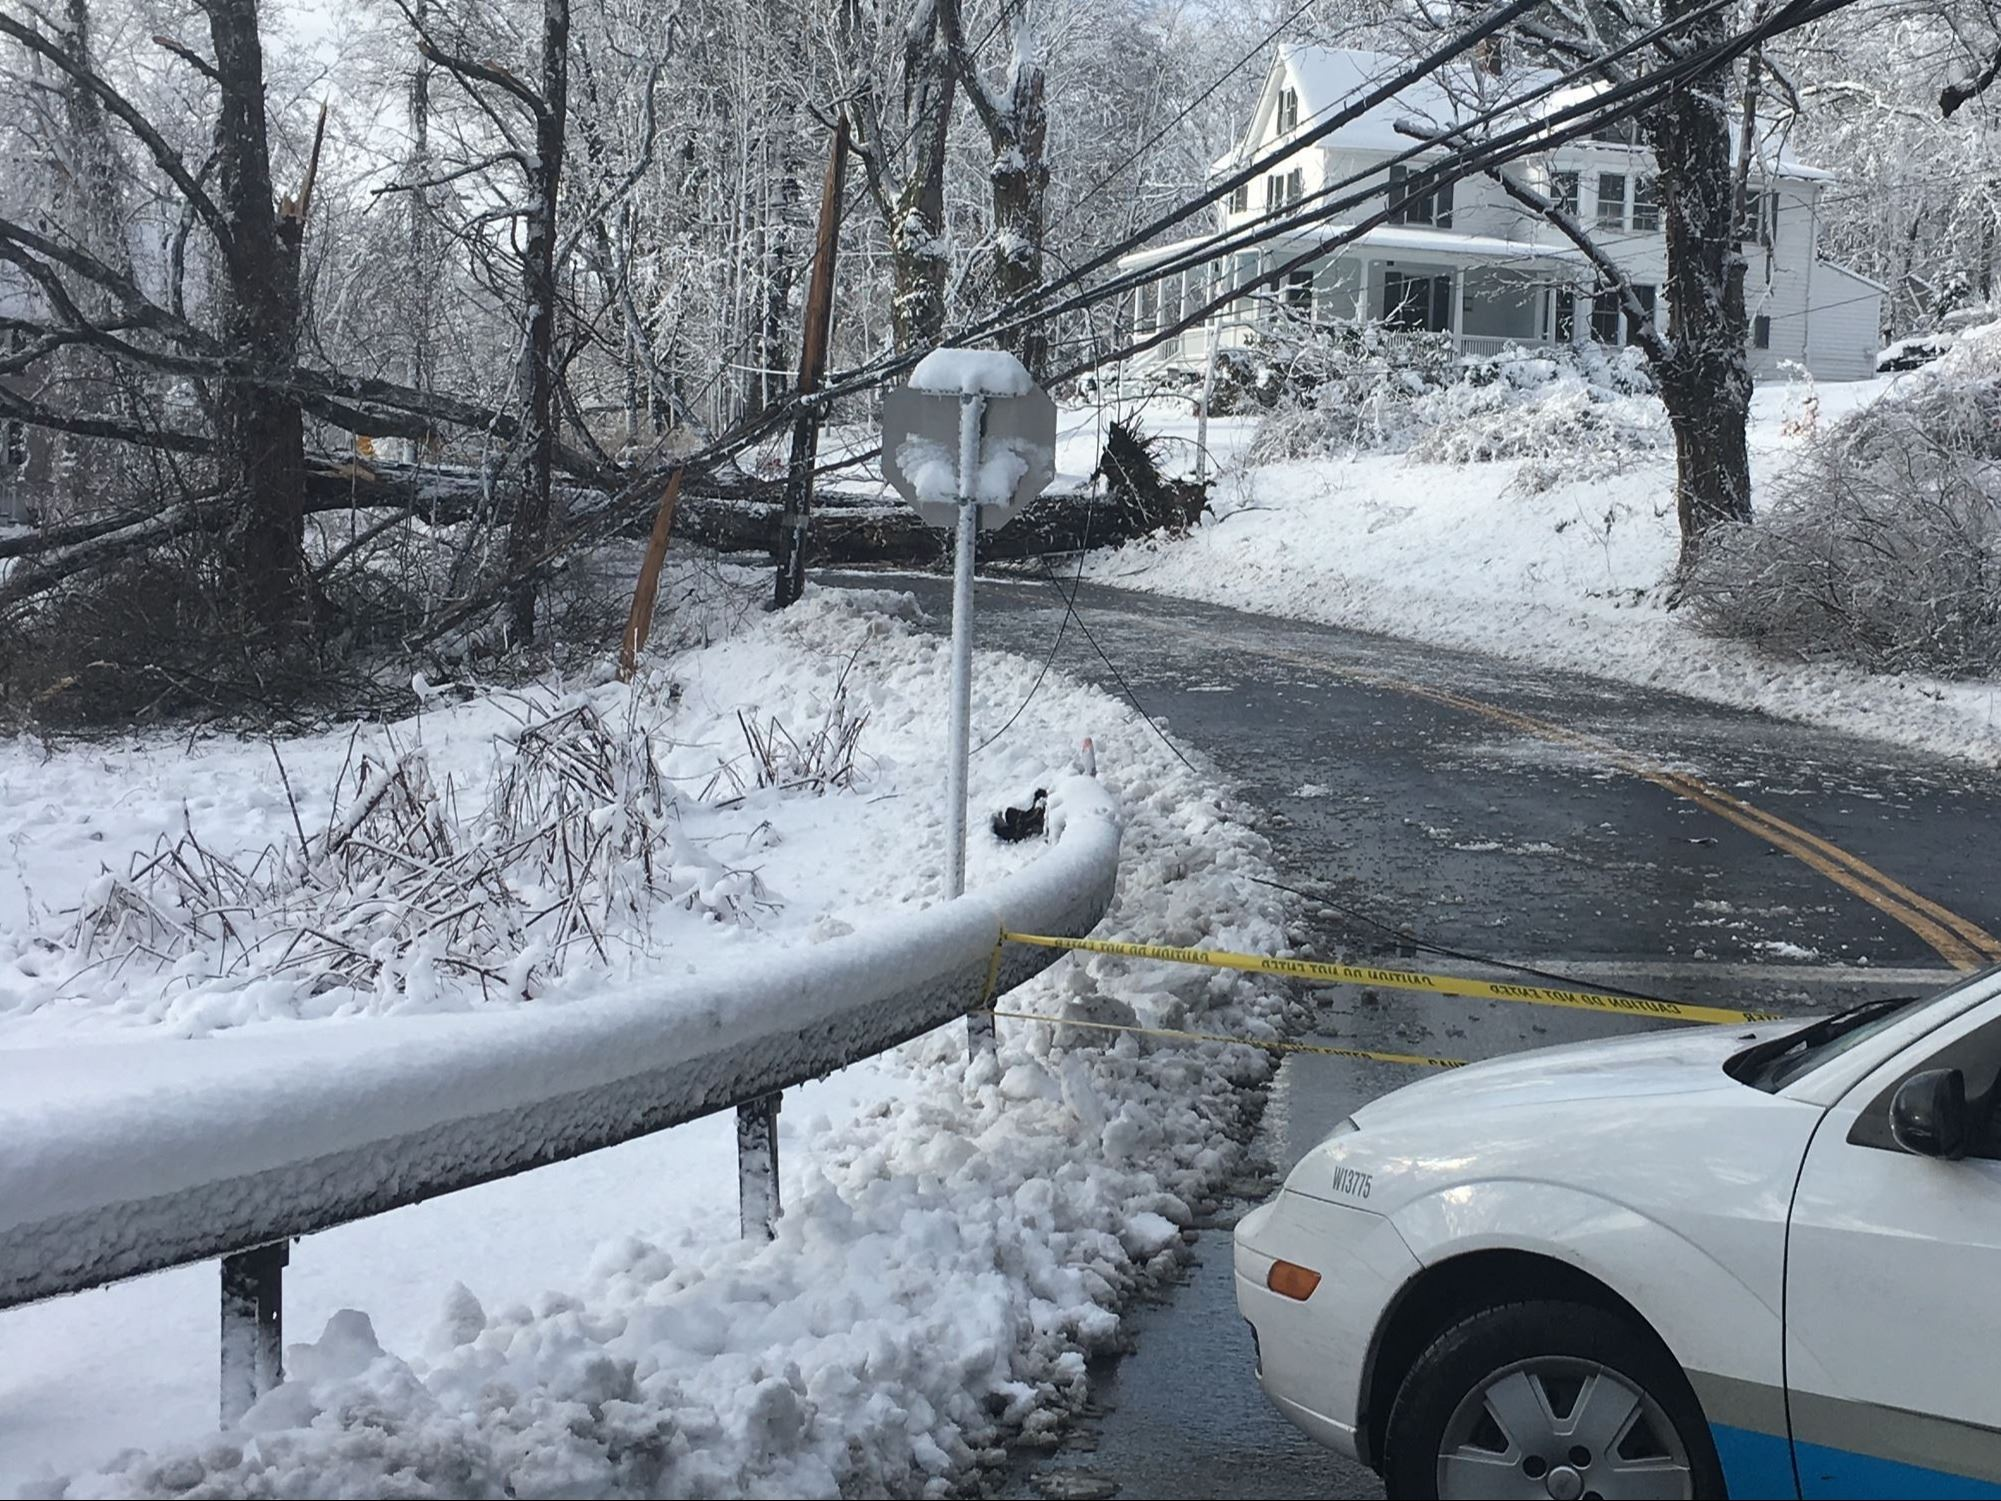 Fallen Tree on Road in Snow Storm